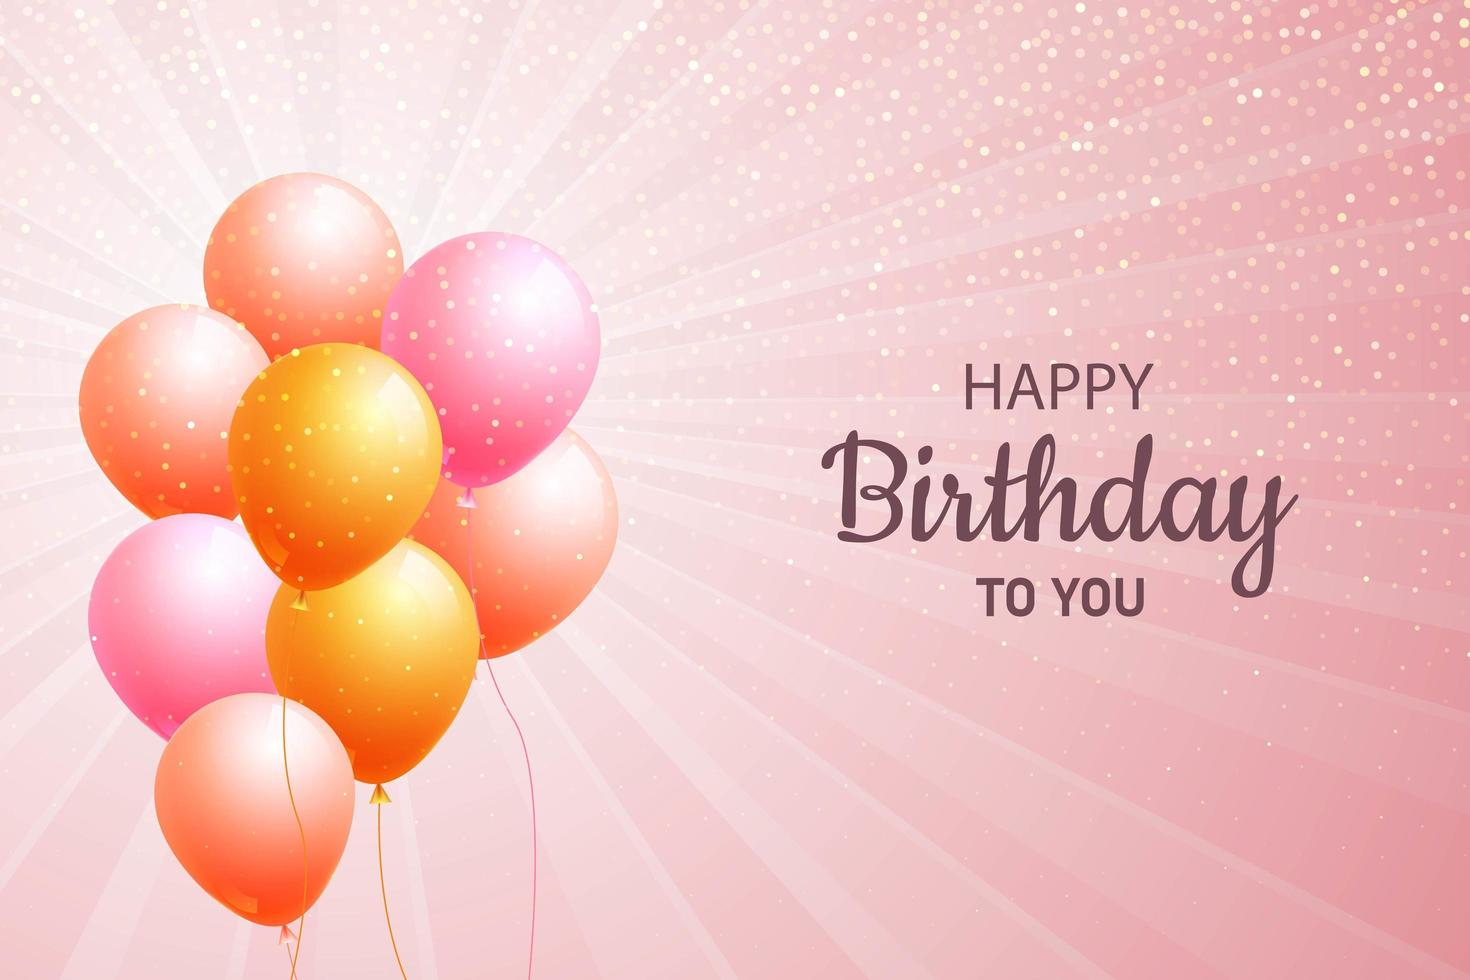 Happy Birthday Balloons Card Pink Background vector